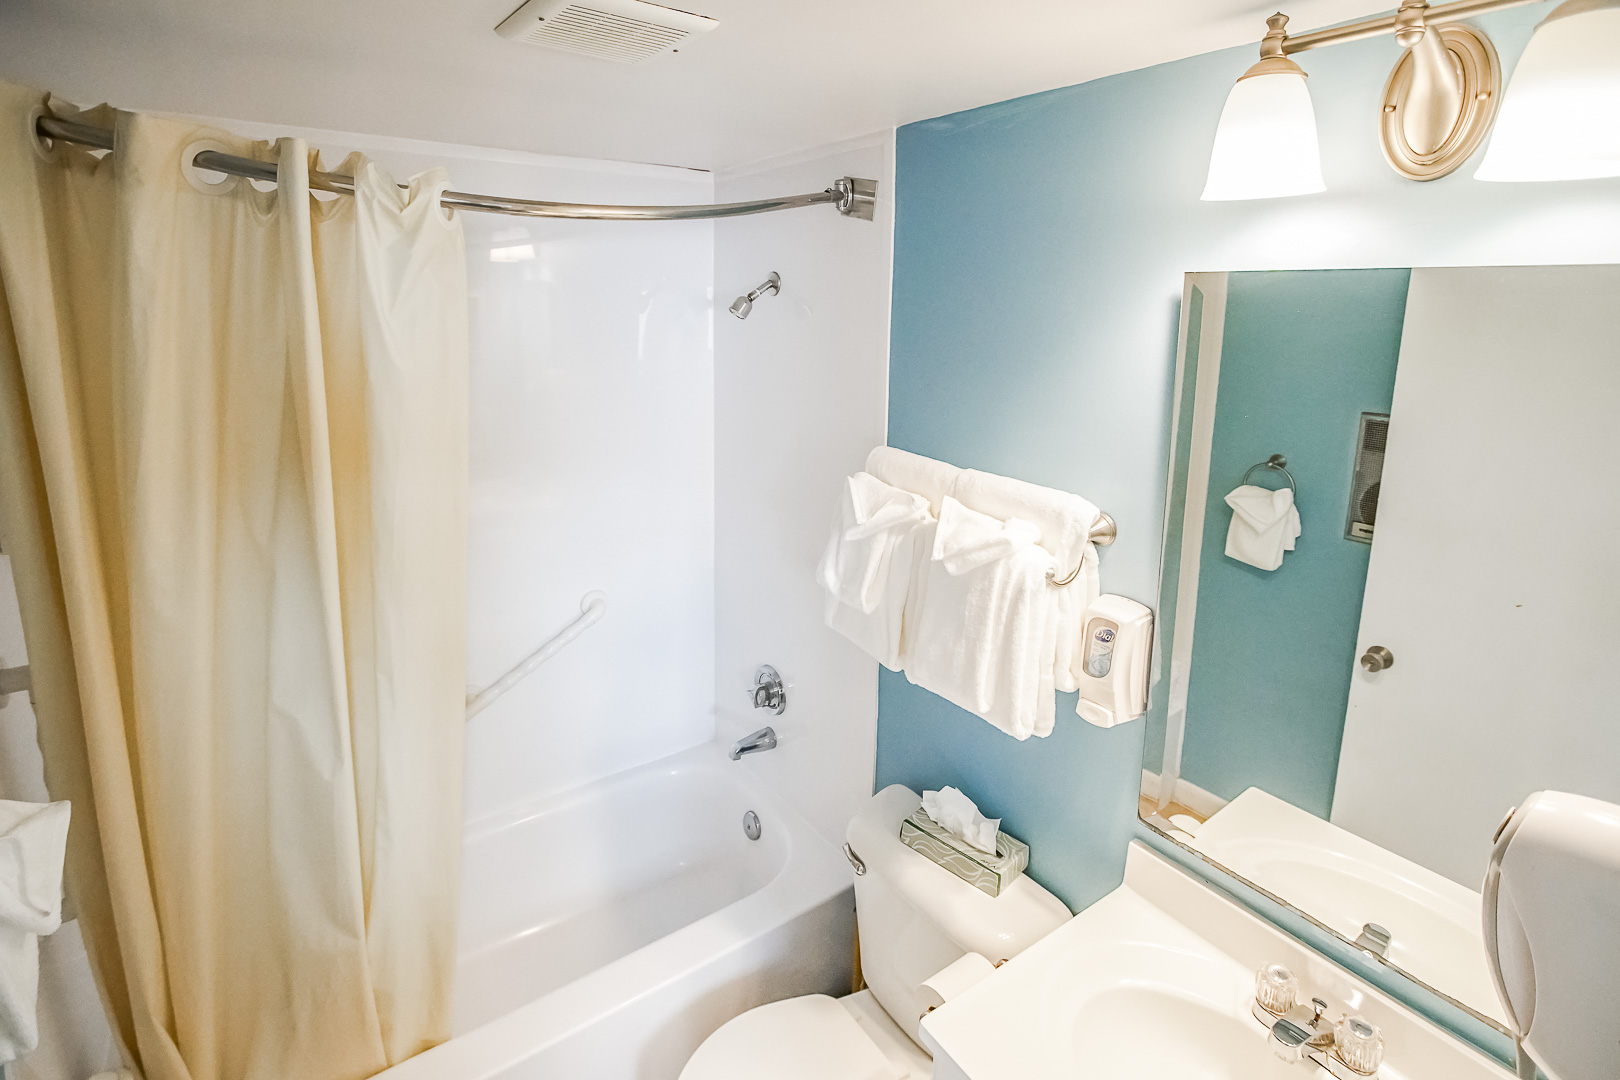 A clean bathroom view at VRI's Seawinds II Resort in Massachusetts.